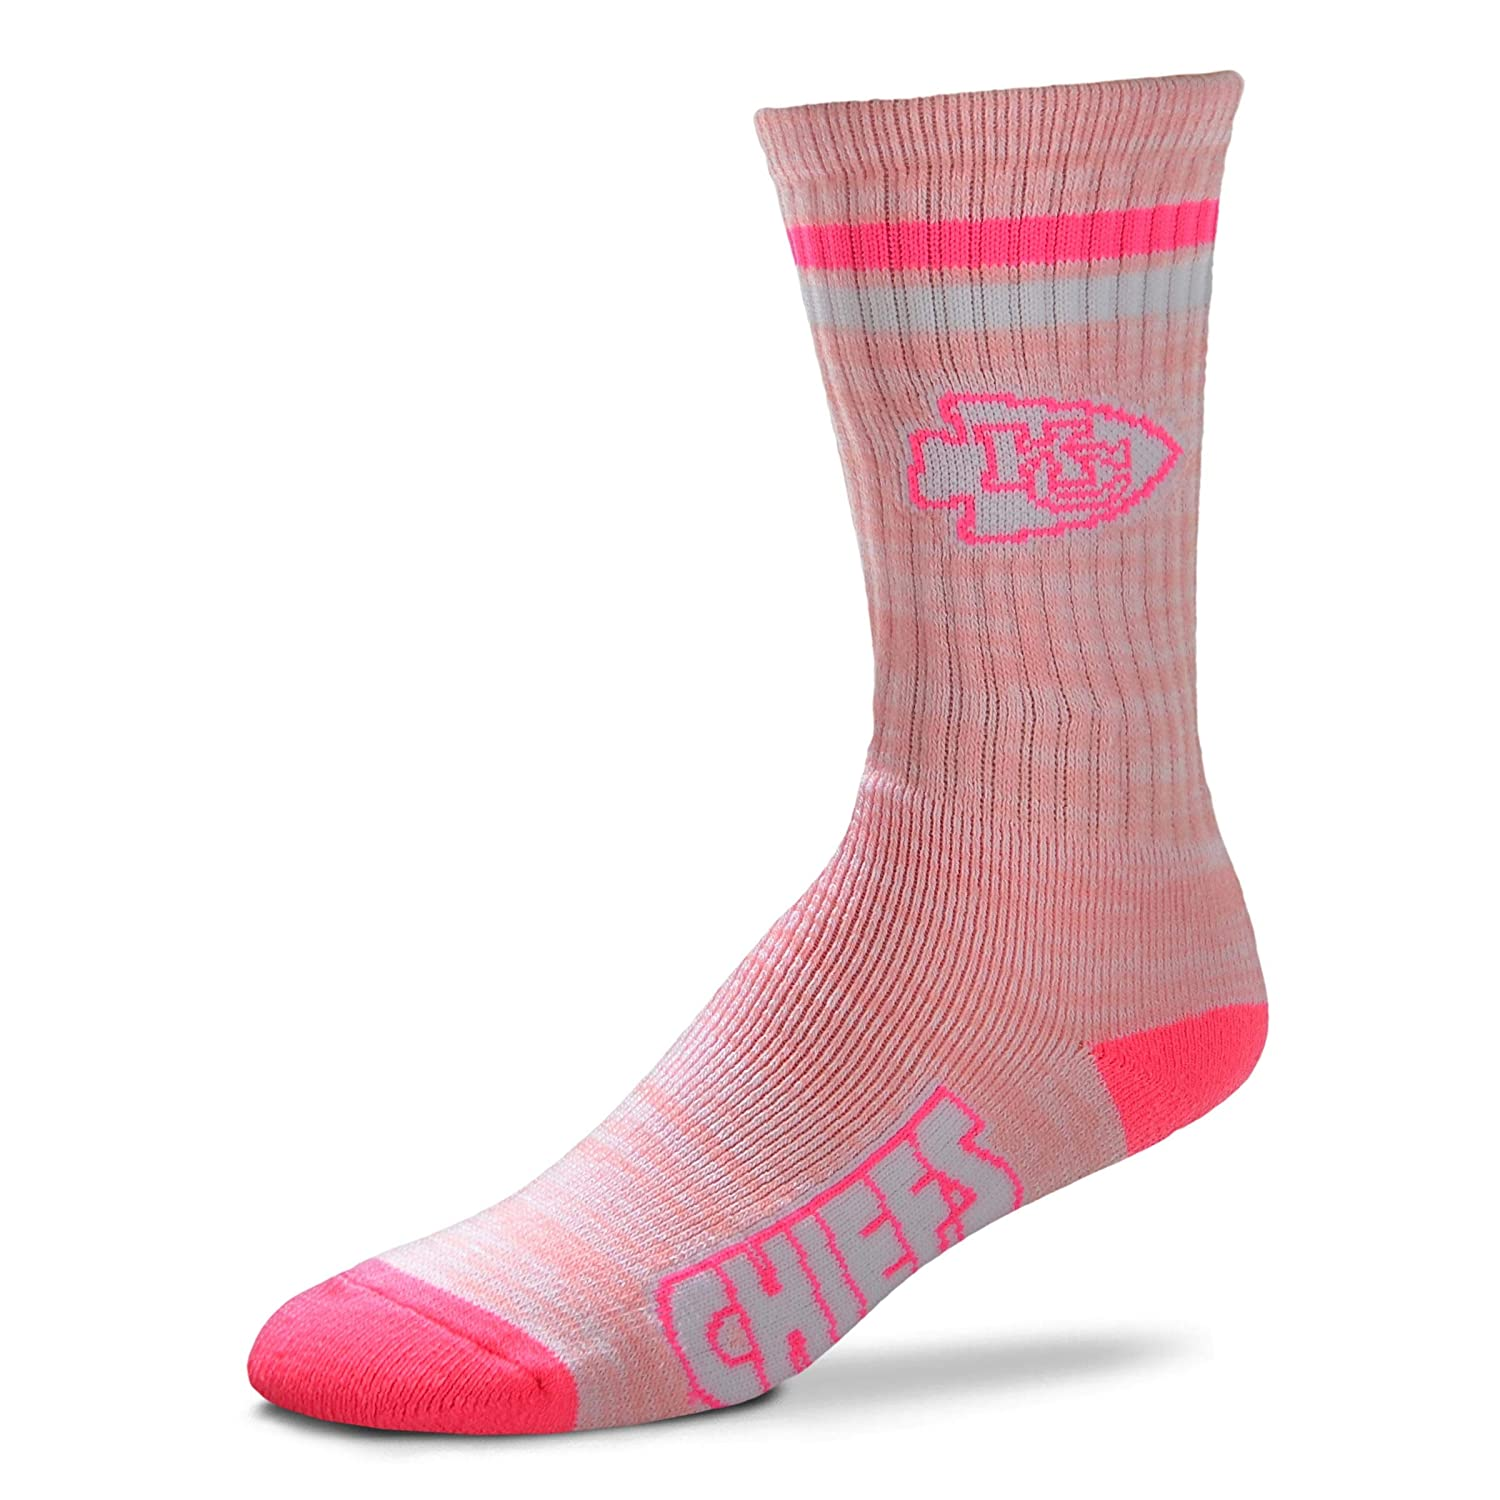 NFL Pretty in Pink Womens Crew Socks For Bare Feet